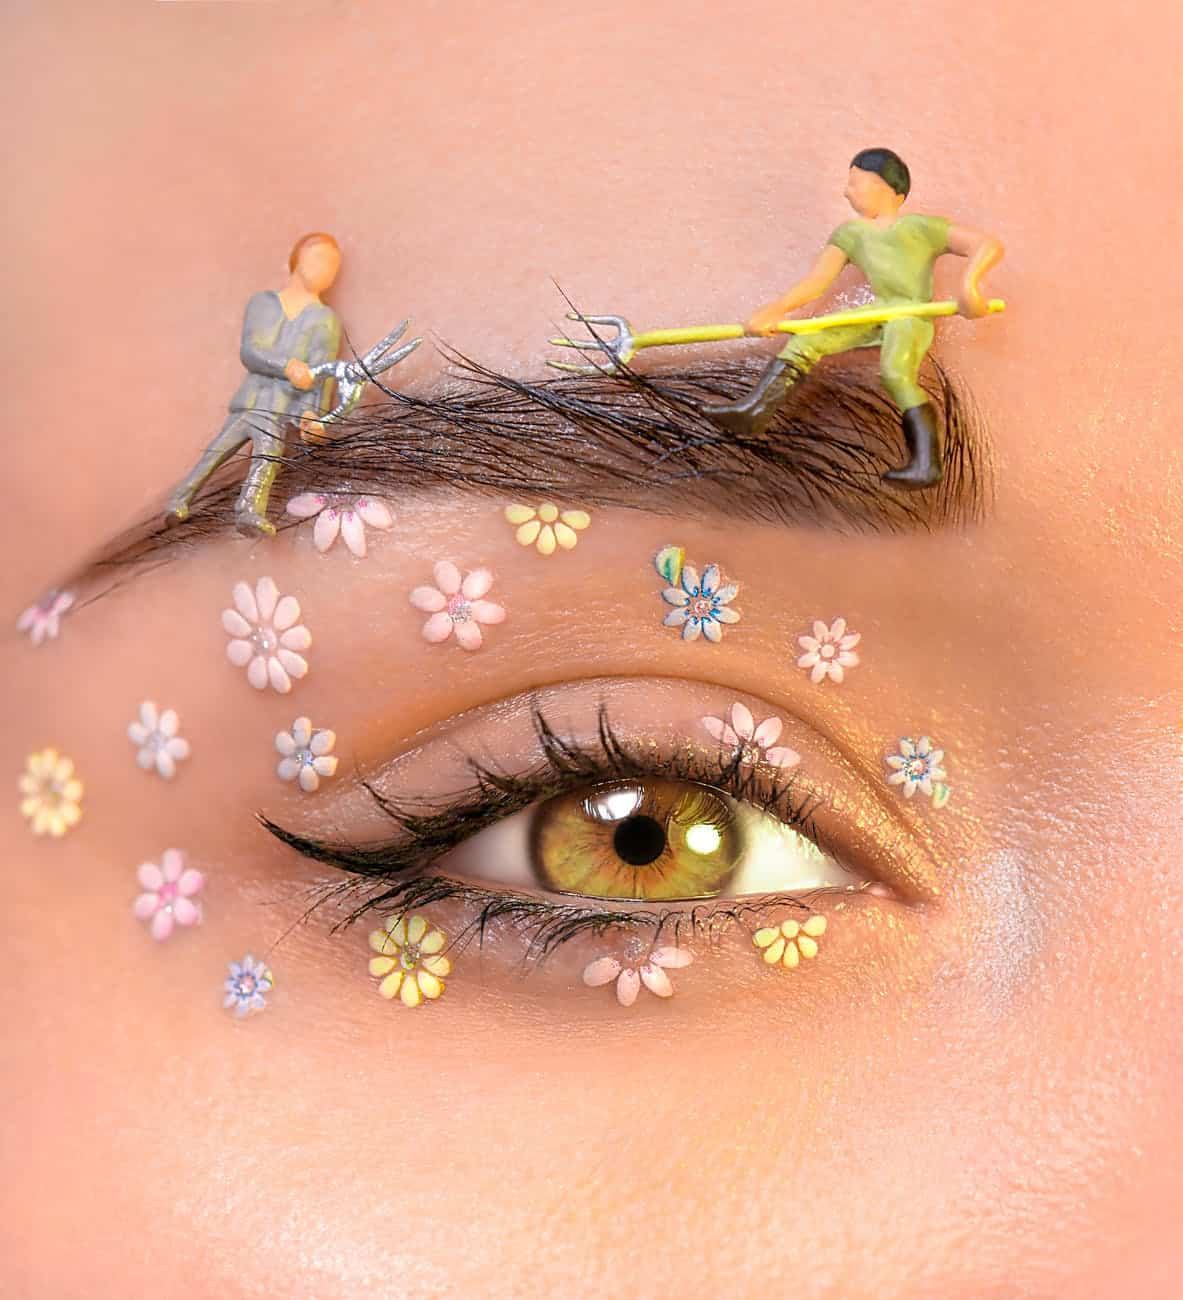 artistic eye makeup